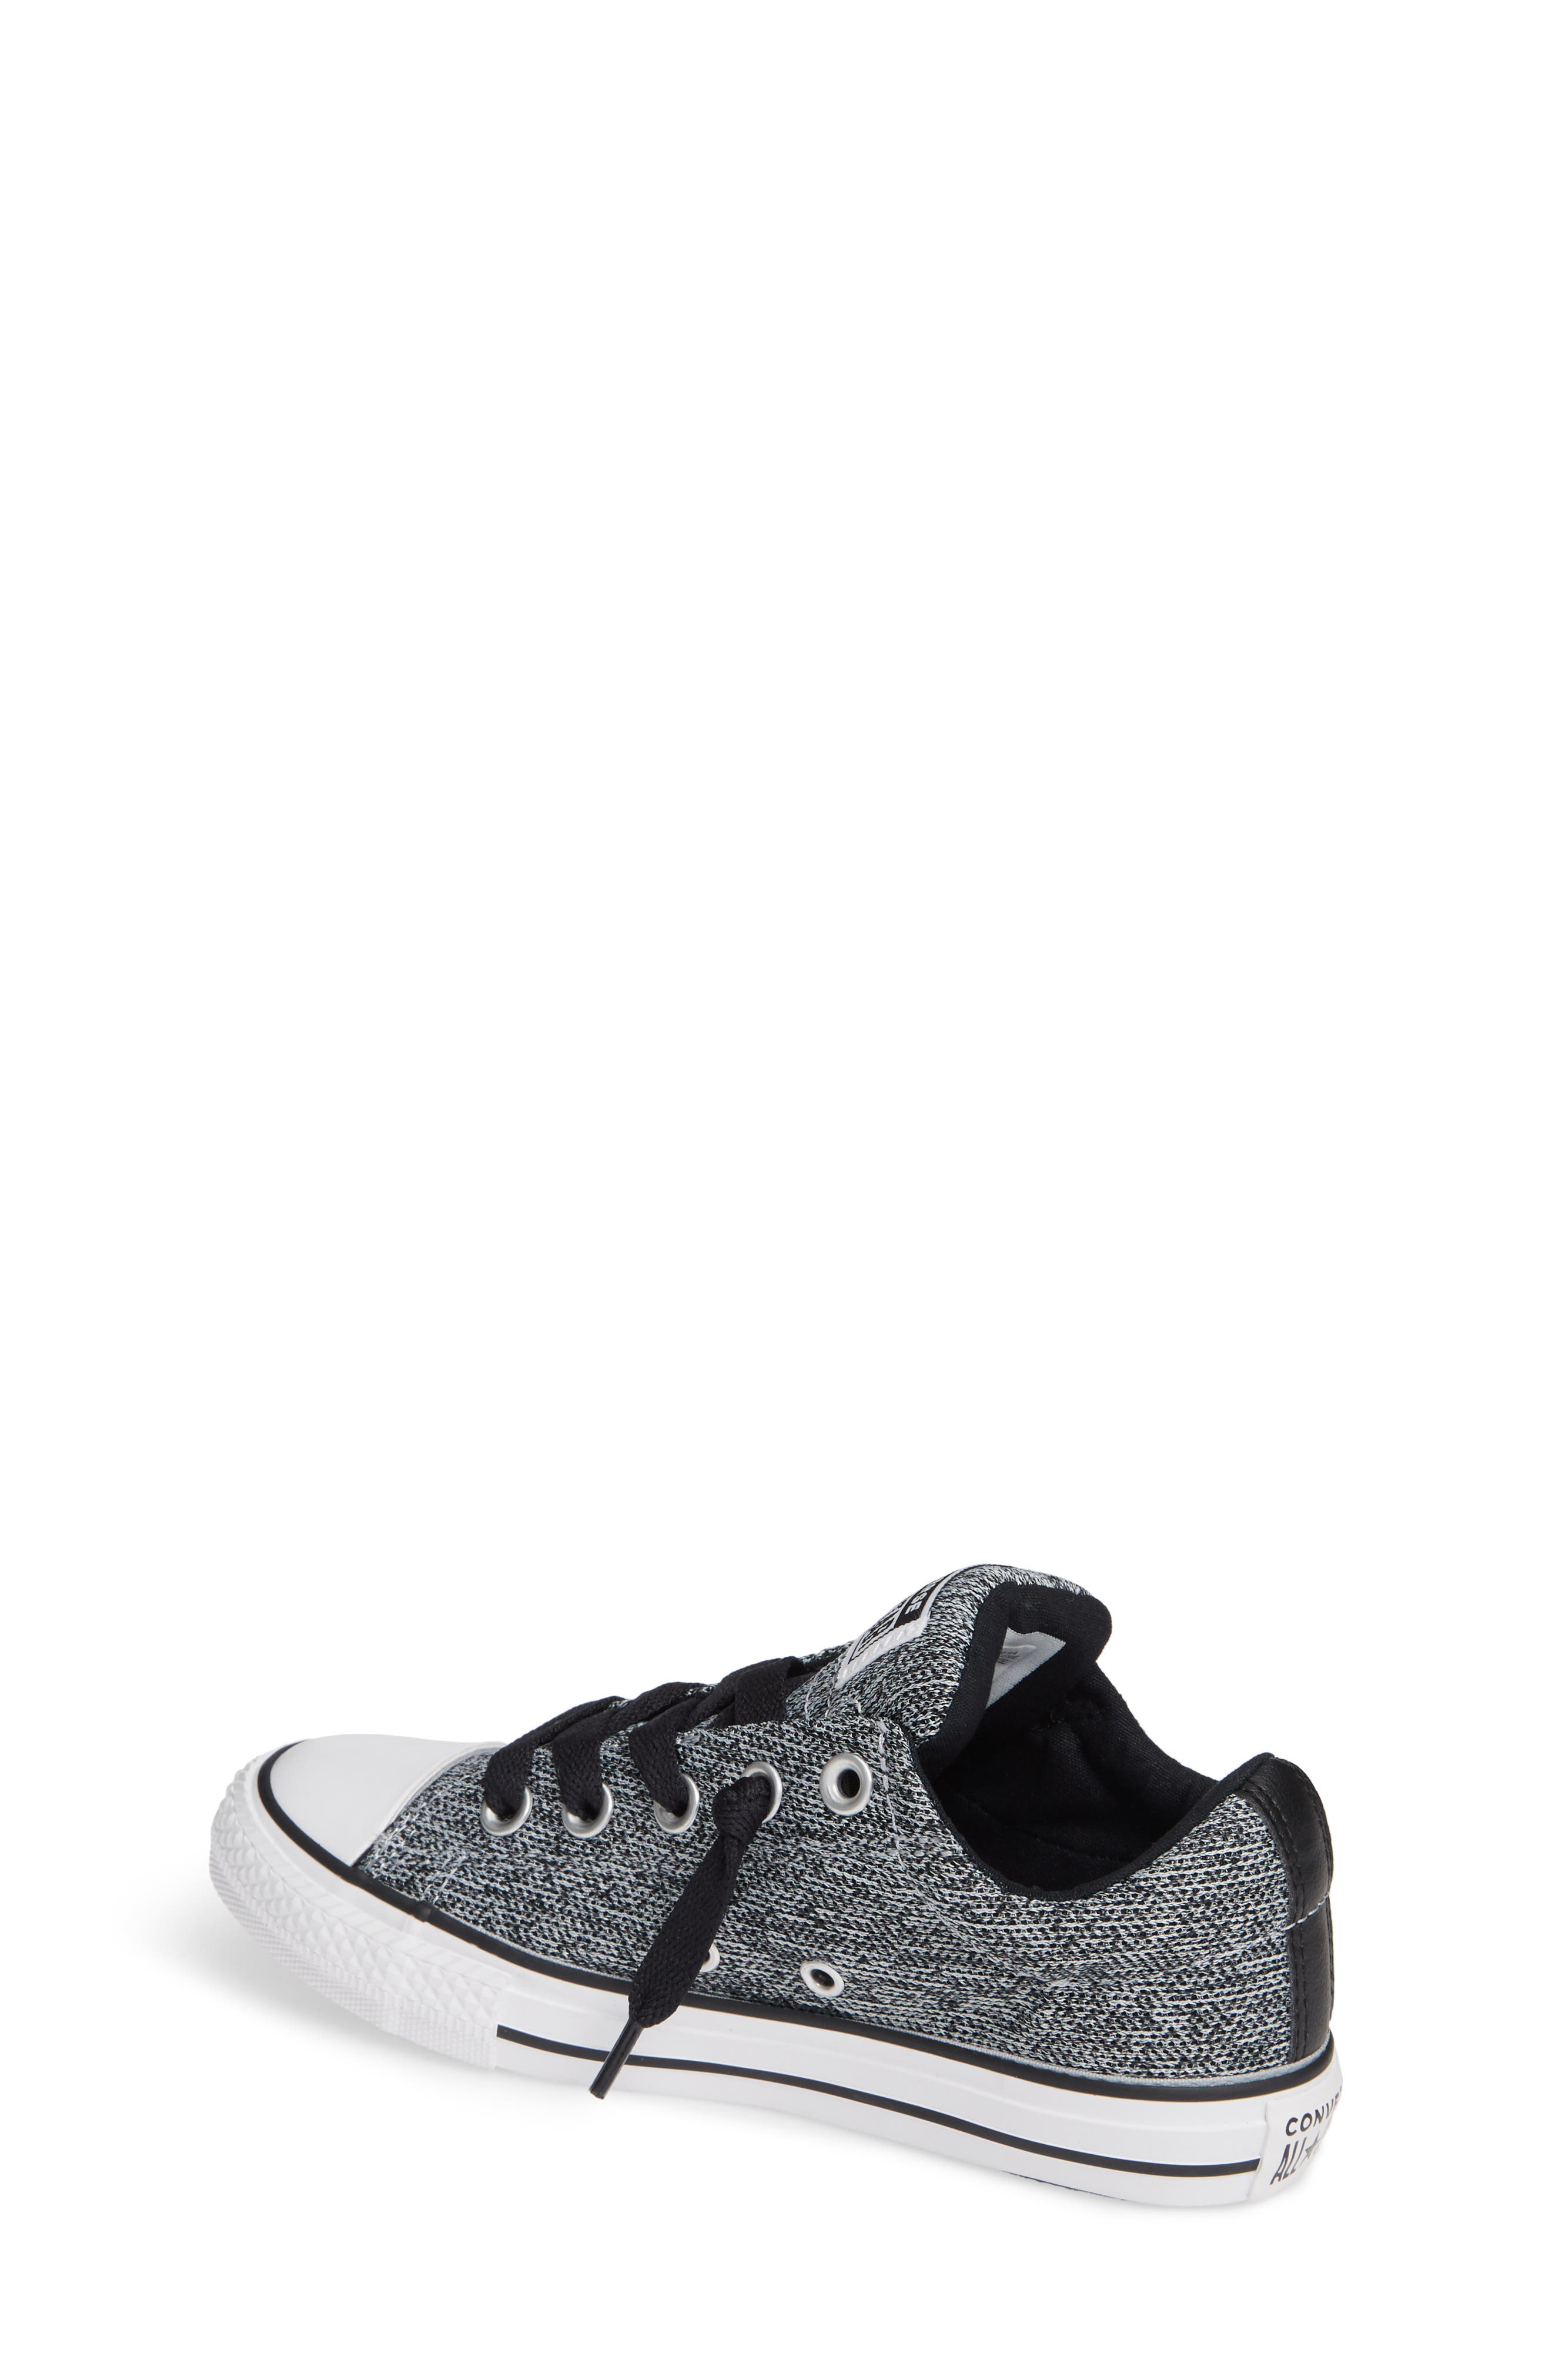 CONVERSE, All Star<sup>®</sup> Graphite Textured Street Low Top Sneaker, Alternate thumbnail 2, color, WOLF GREY